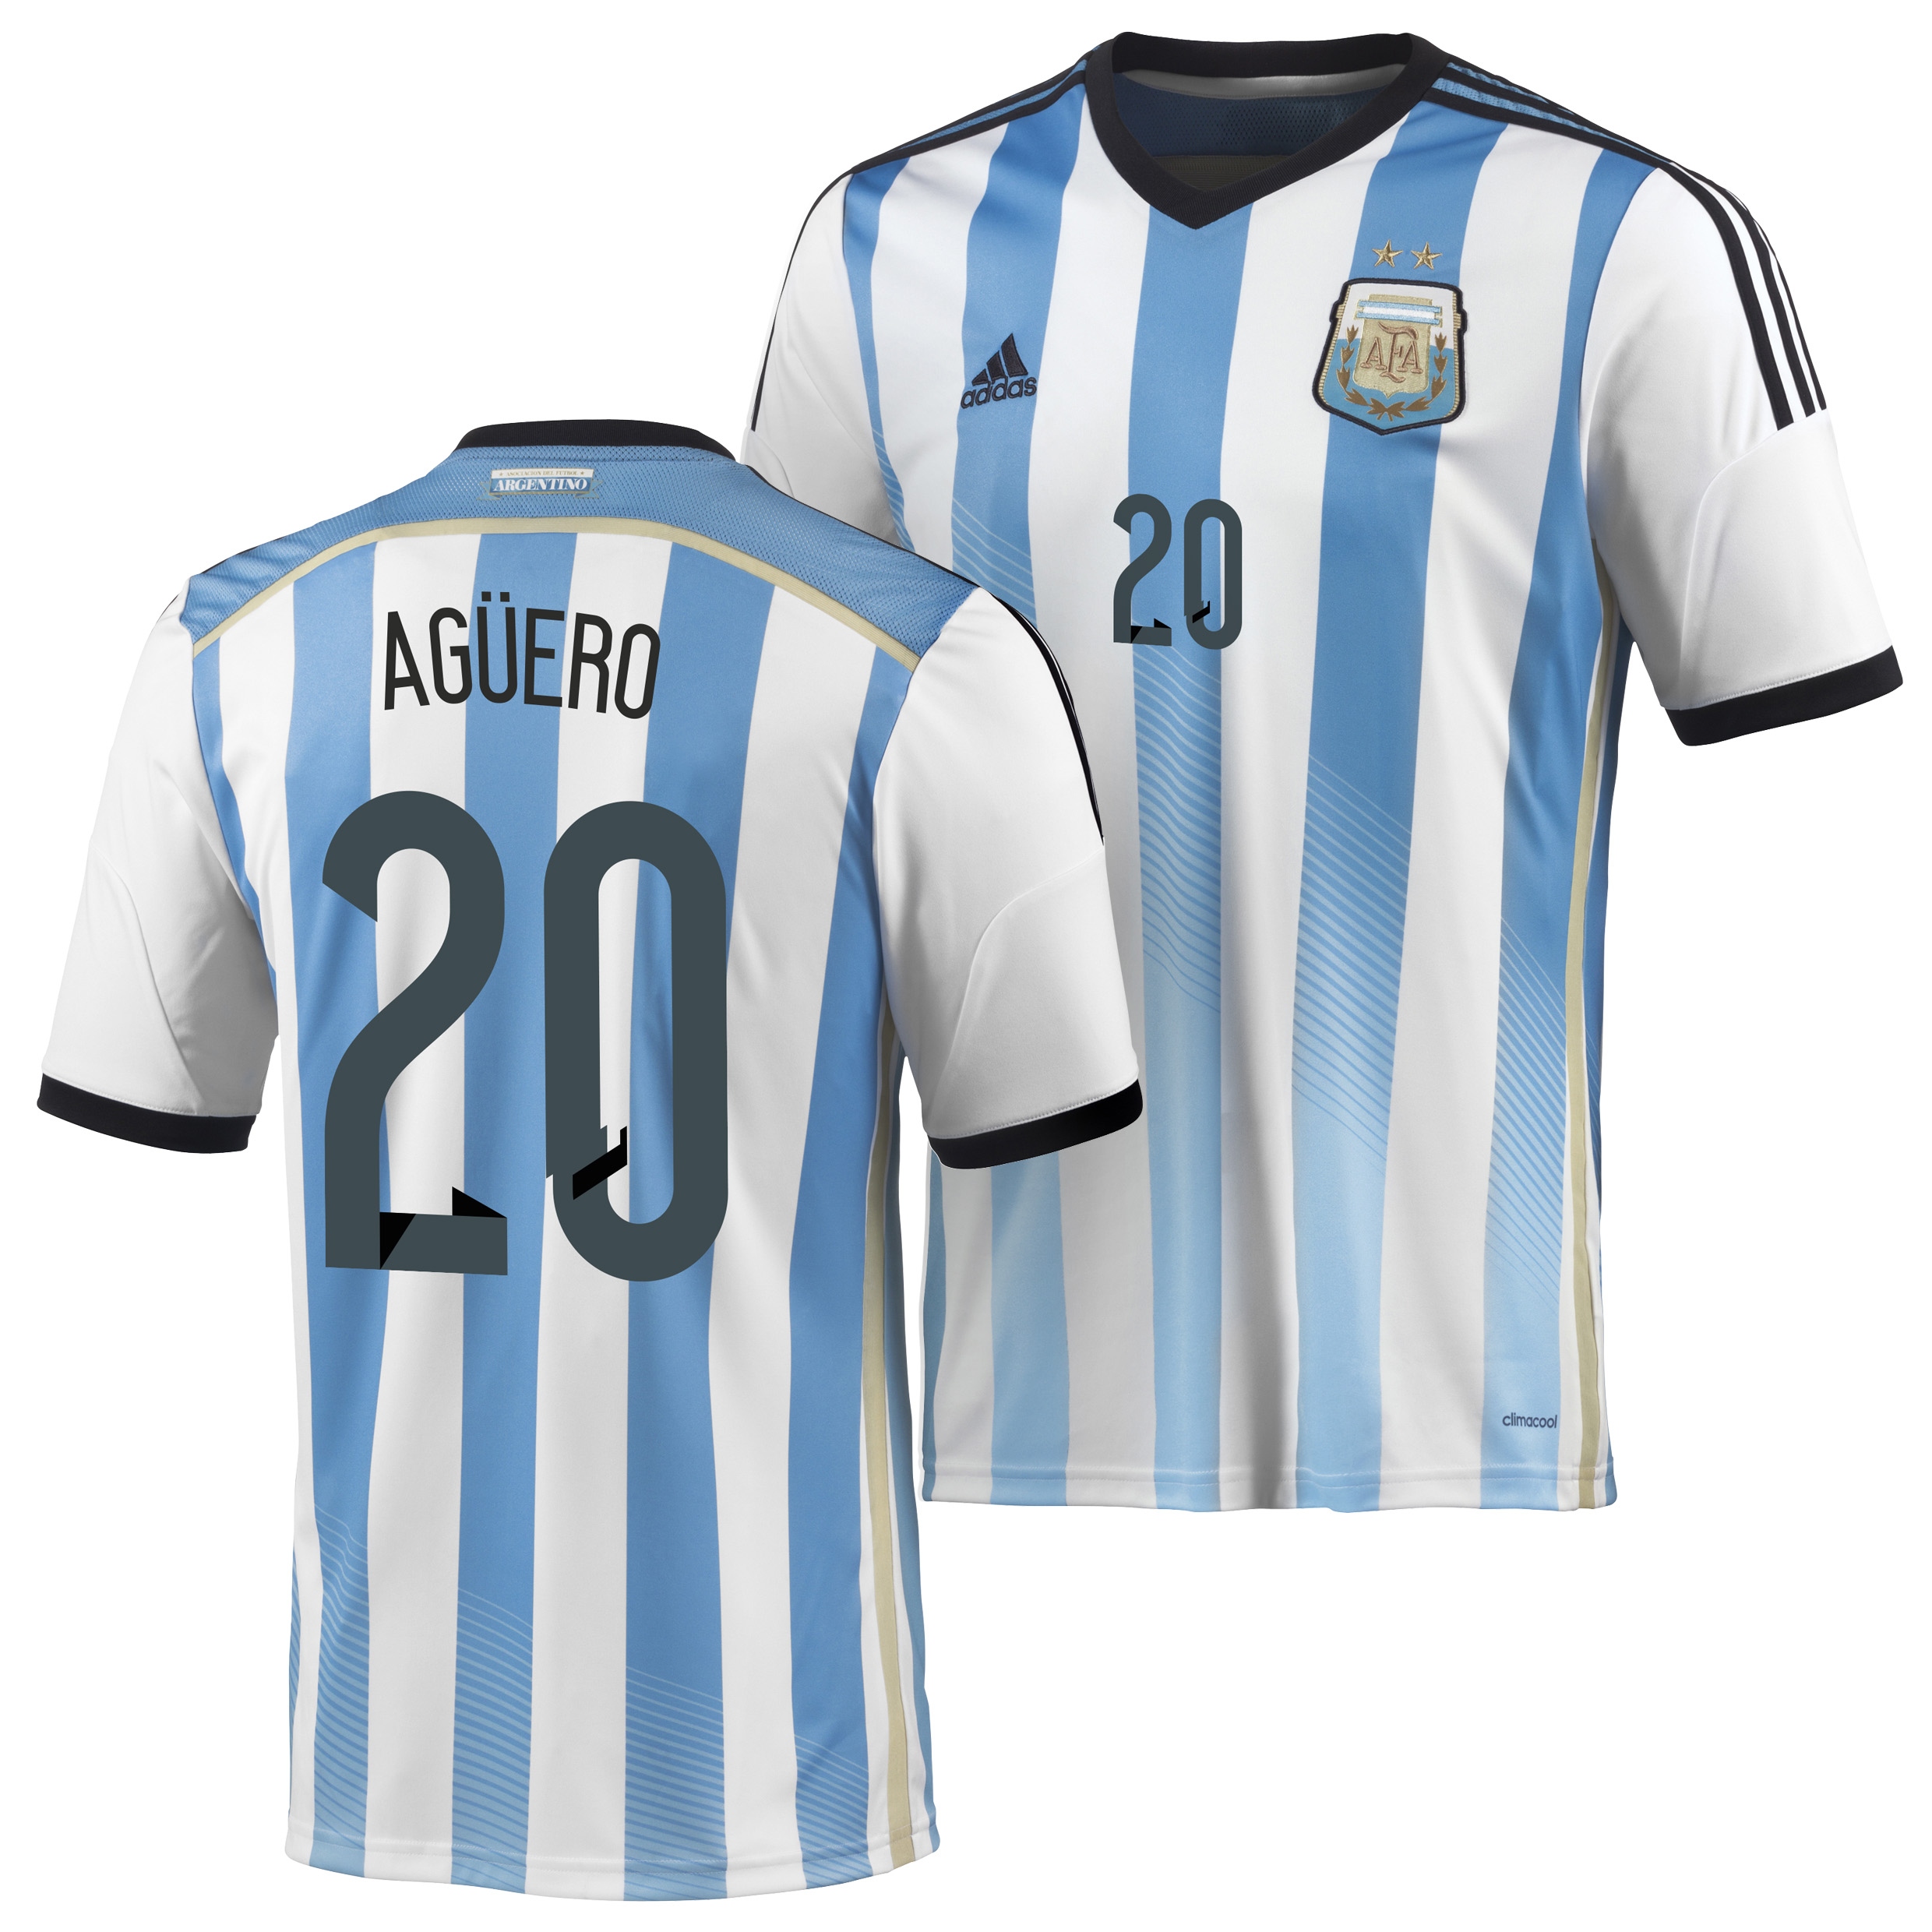 Argentina Home Shirt 2013/15 with Aguero 20 printing